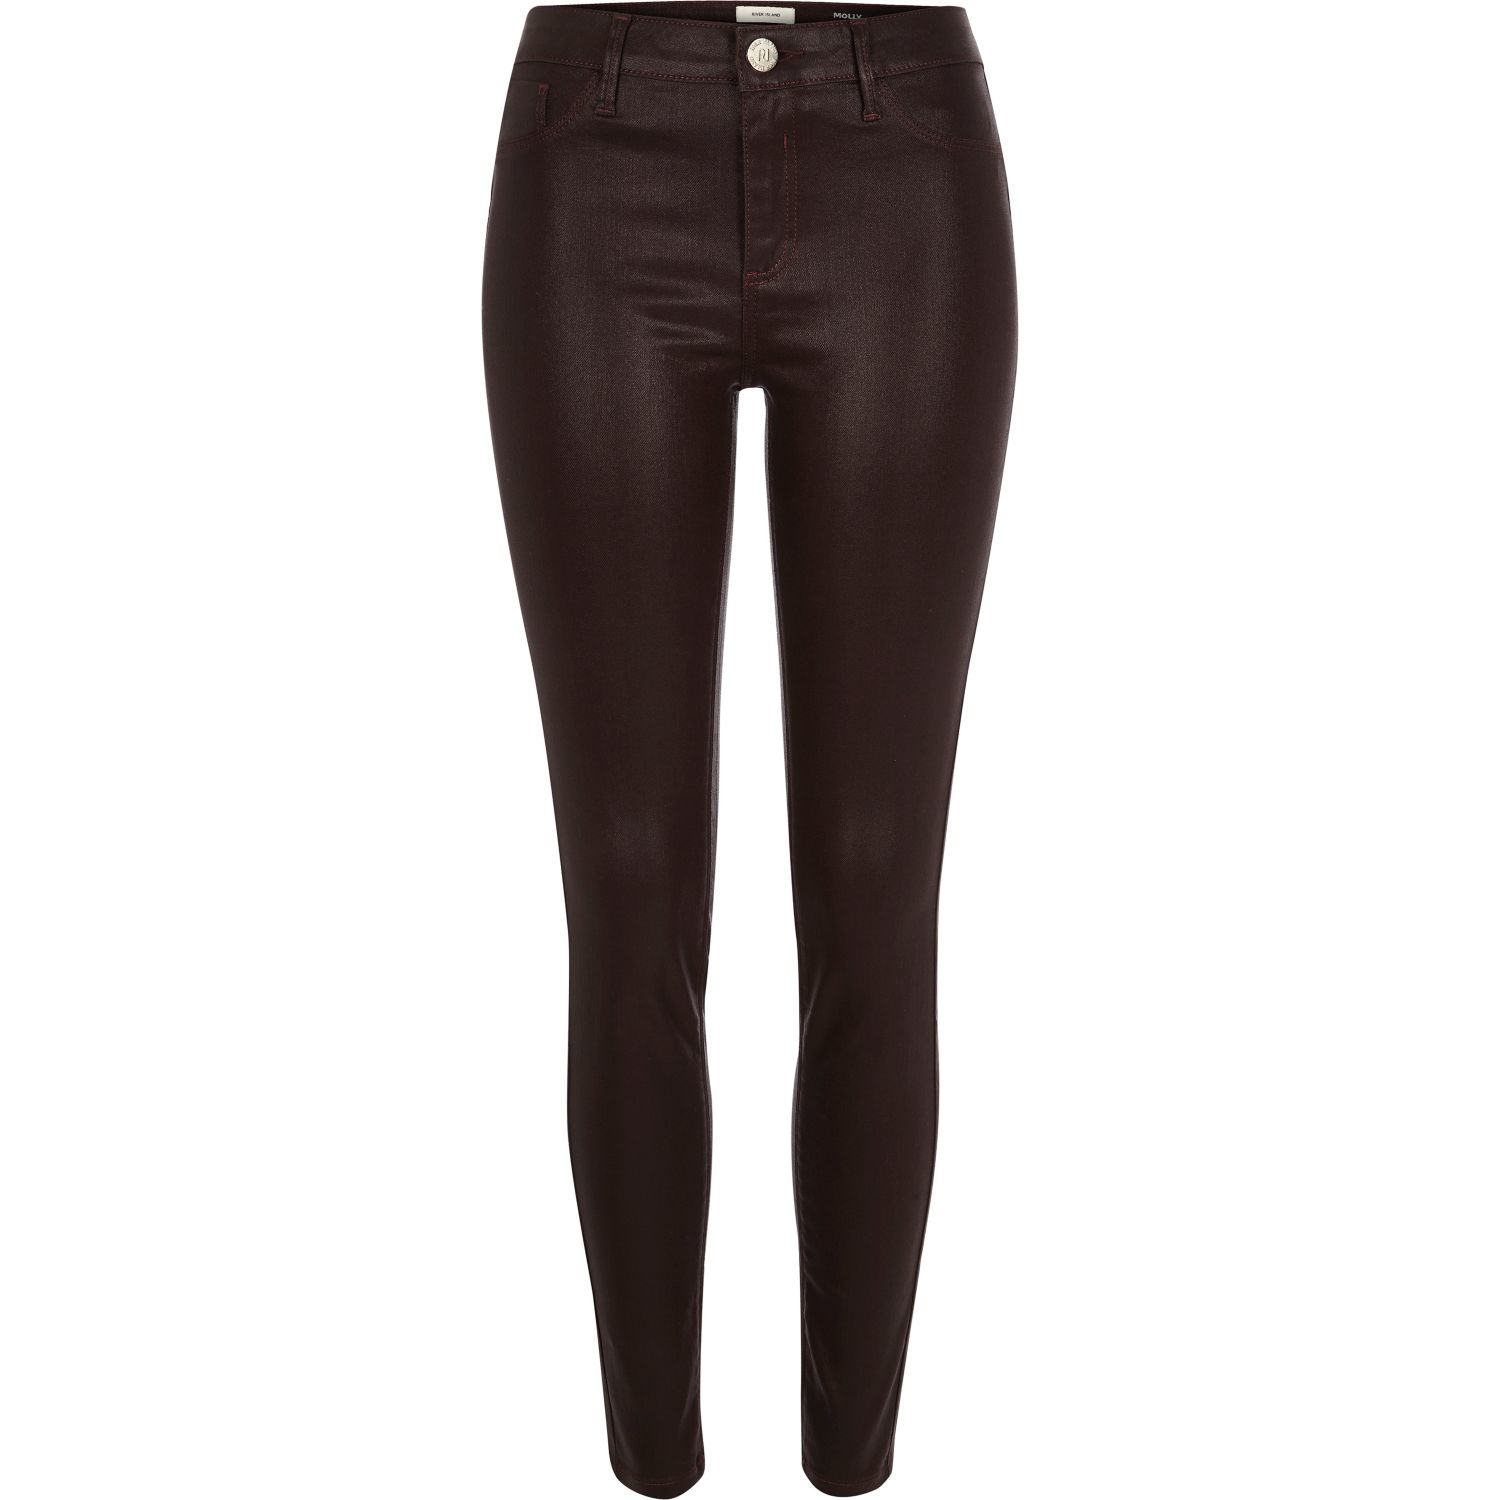 maurices jeggings are a fun statement pant perfect for any occasion. Add some bright colors and pair with neutral tops, or rock our jegging jeans that go with any top or shoe style. Find the trendiest distressed jeggings this season.